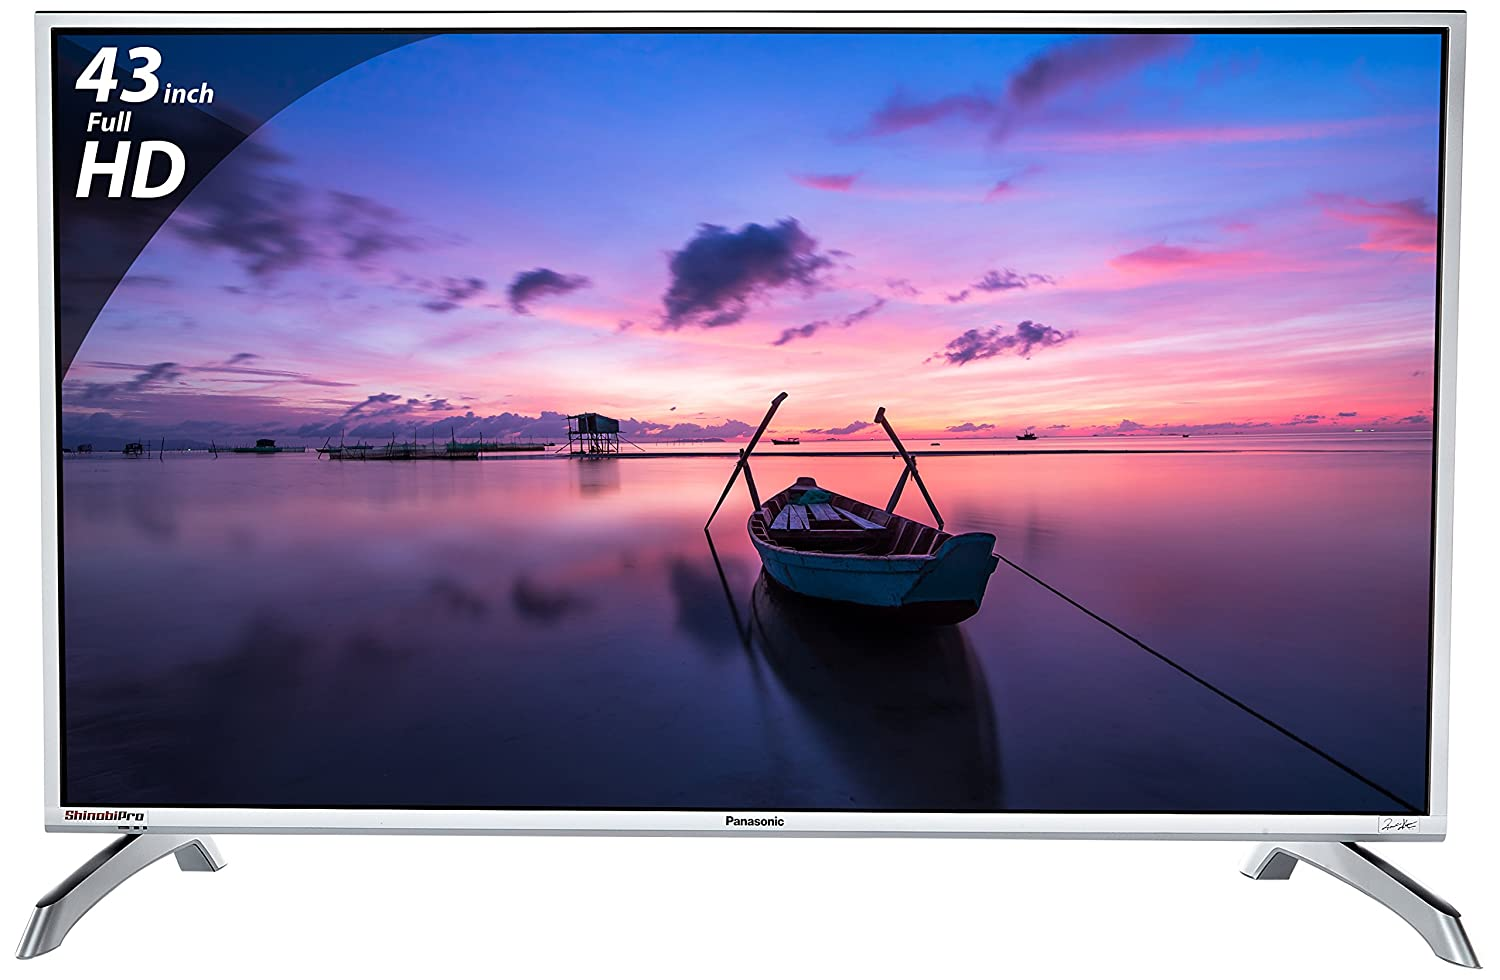 Panasonic 108 cm (43 inches) Viera Shinobi , super bright TH-43E460D Full HD LED TV-39% OFF